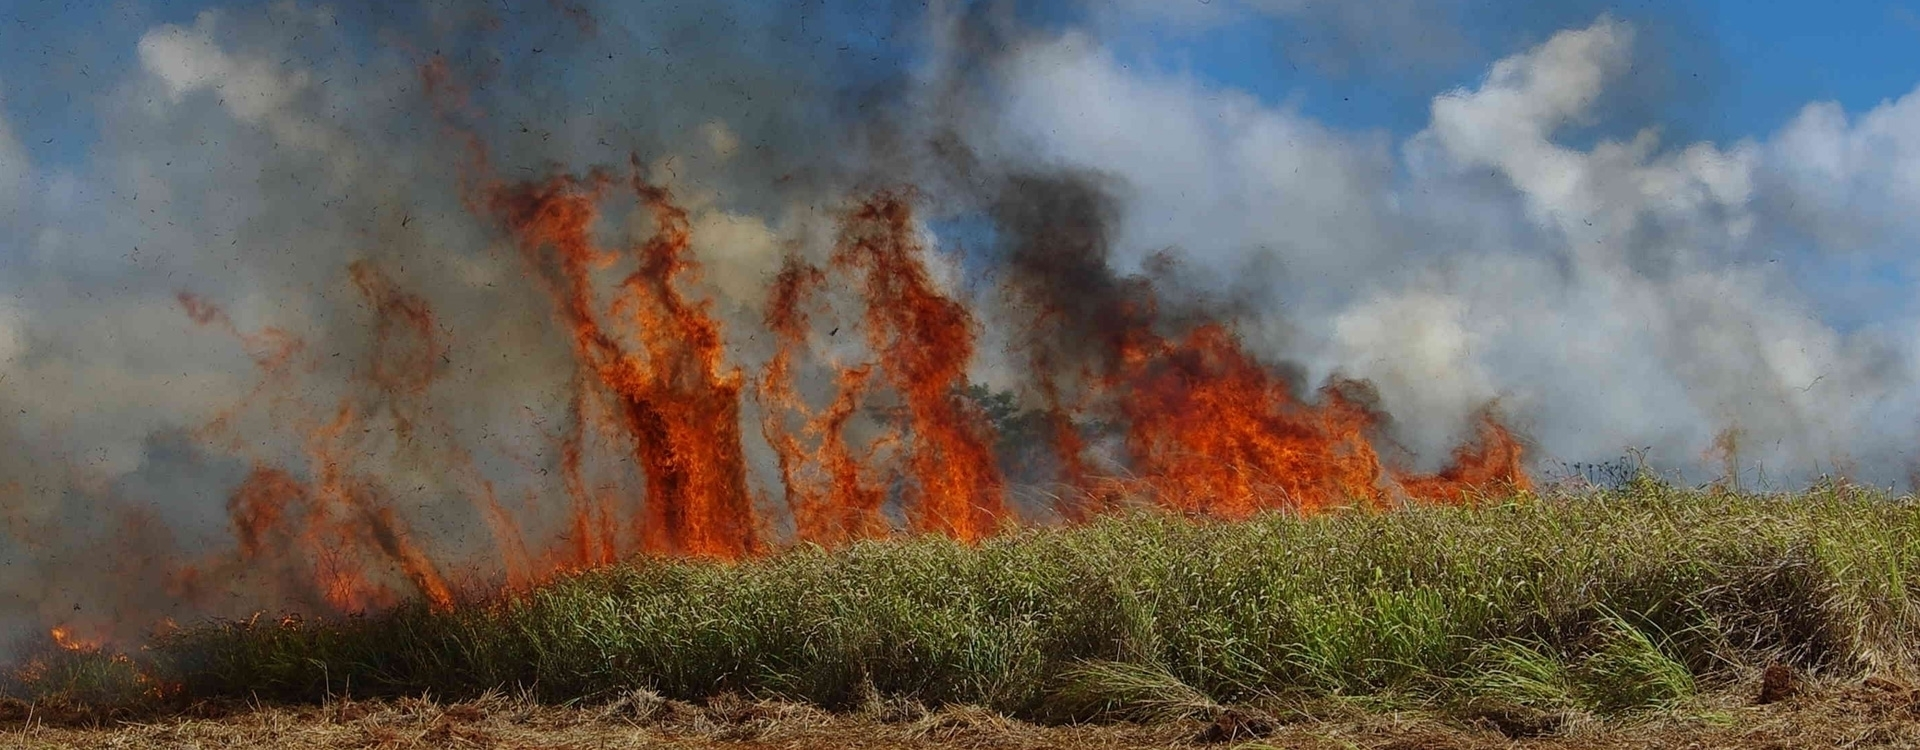 Invasive Grass-Wildfire Cycle